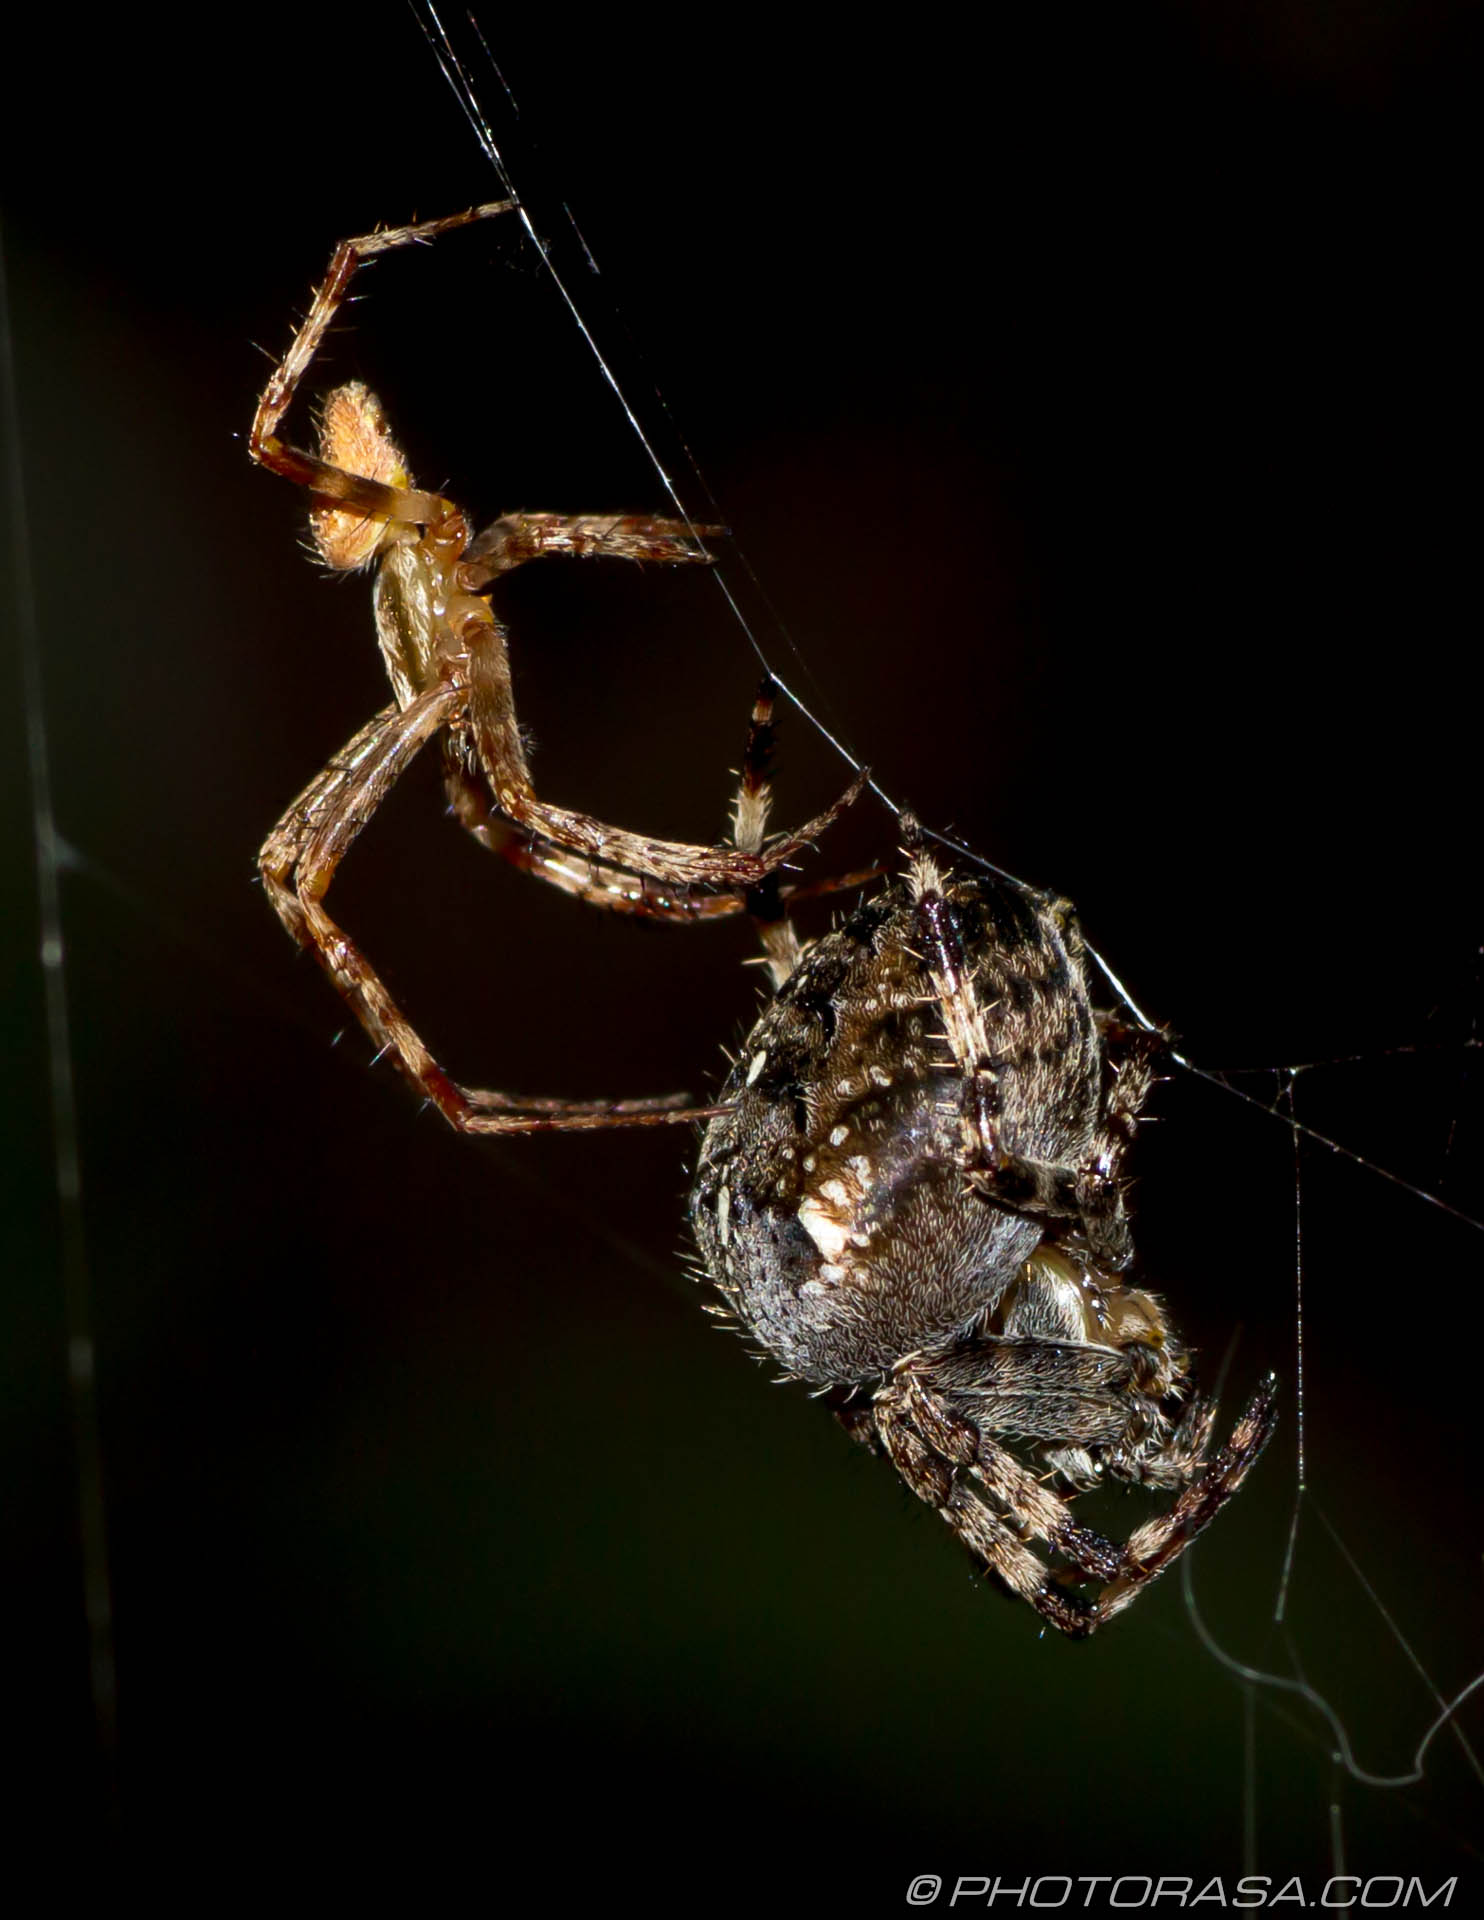 http://photorasa.com/little-large-spider-courtship/female-bracing-herself/